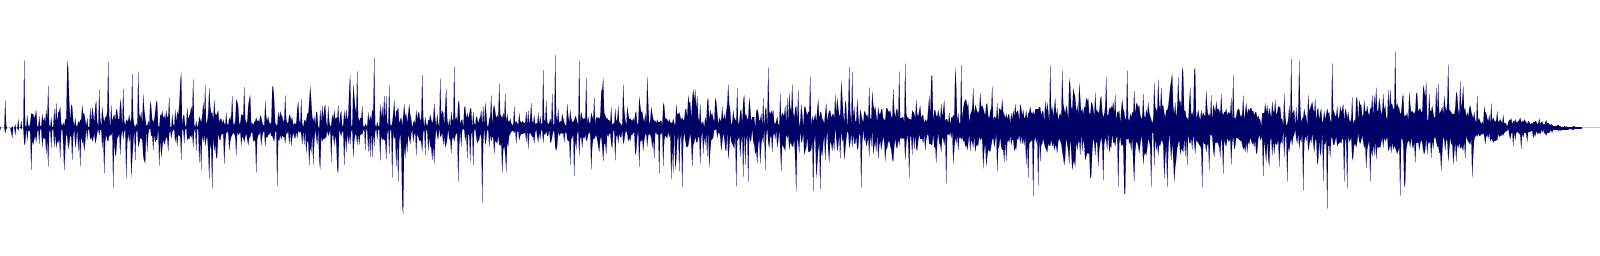 waveform of track #134798